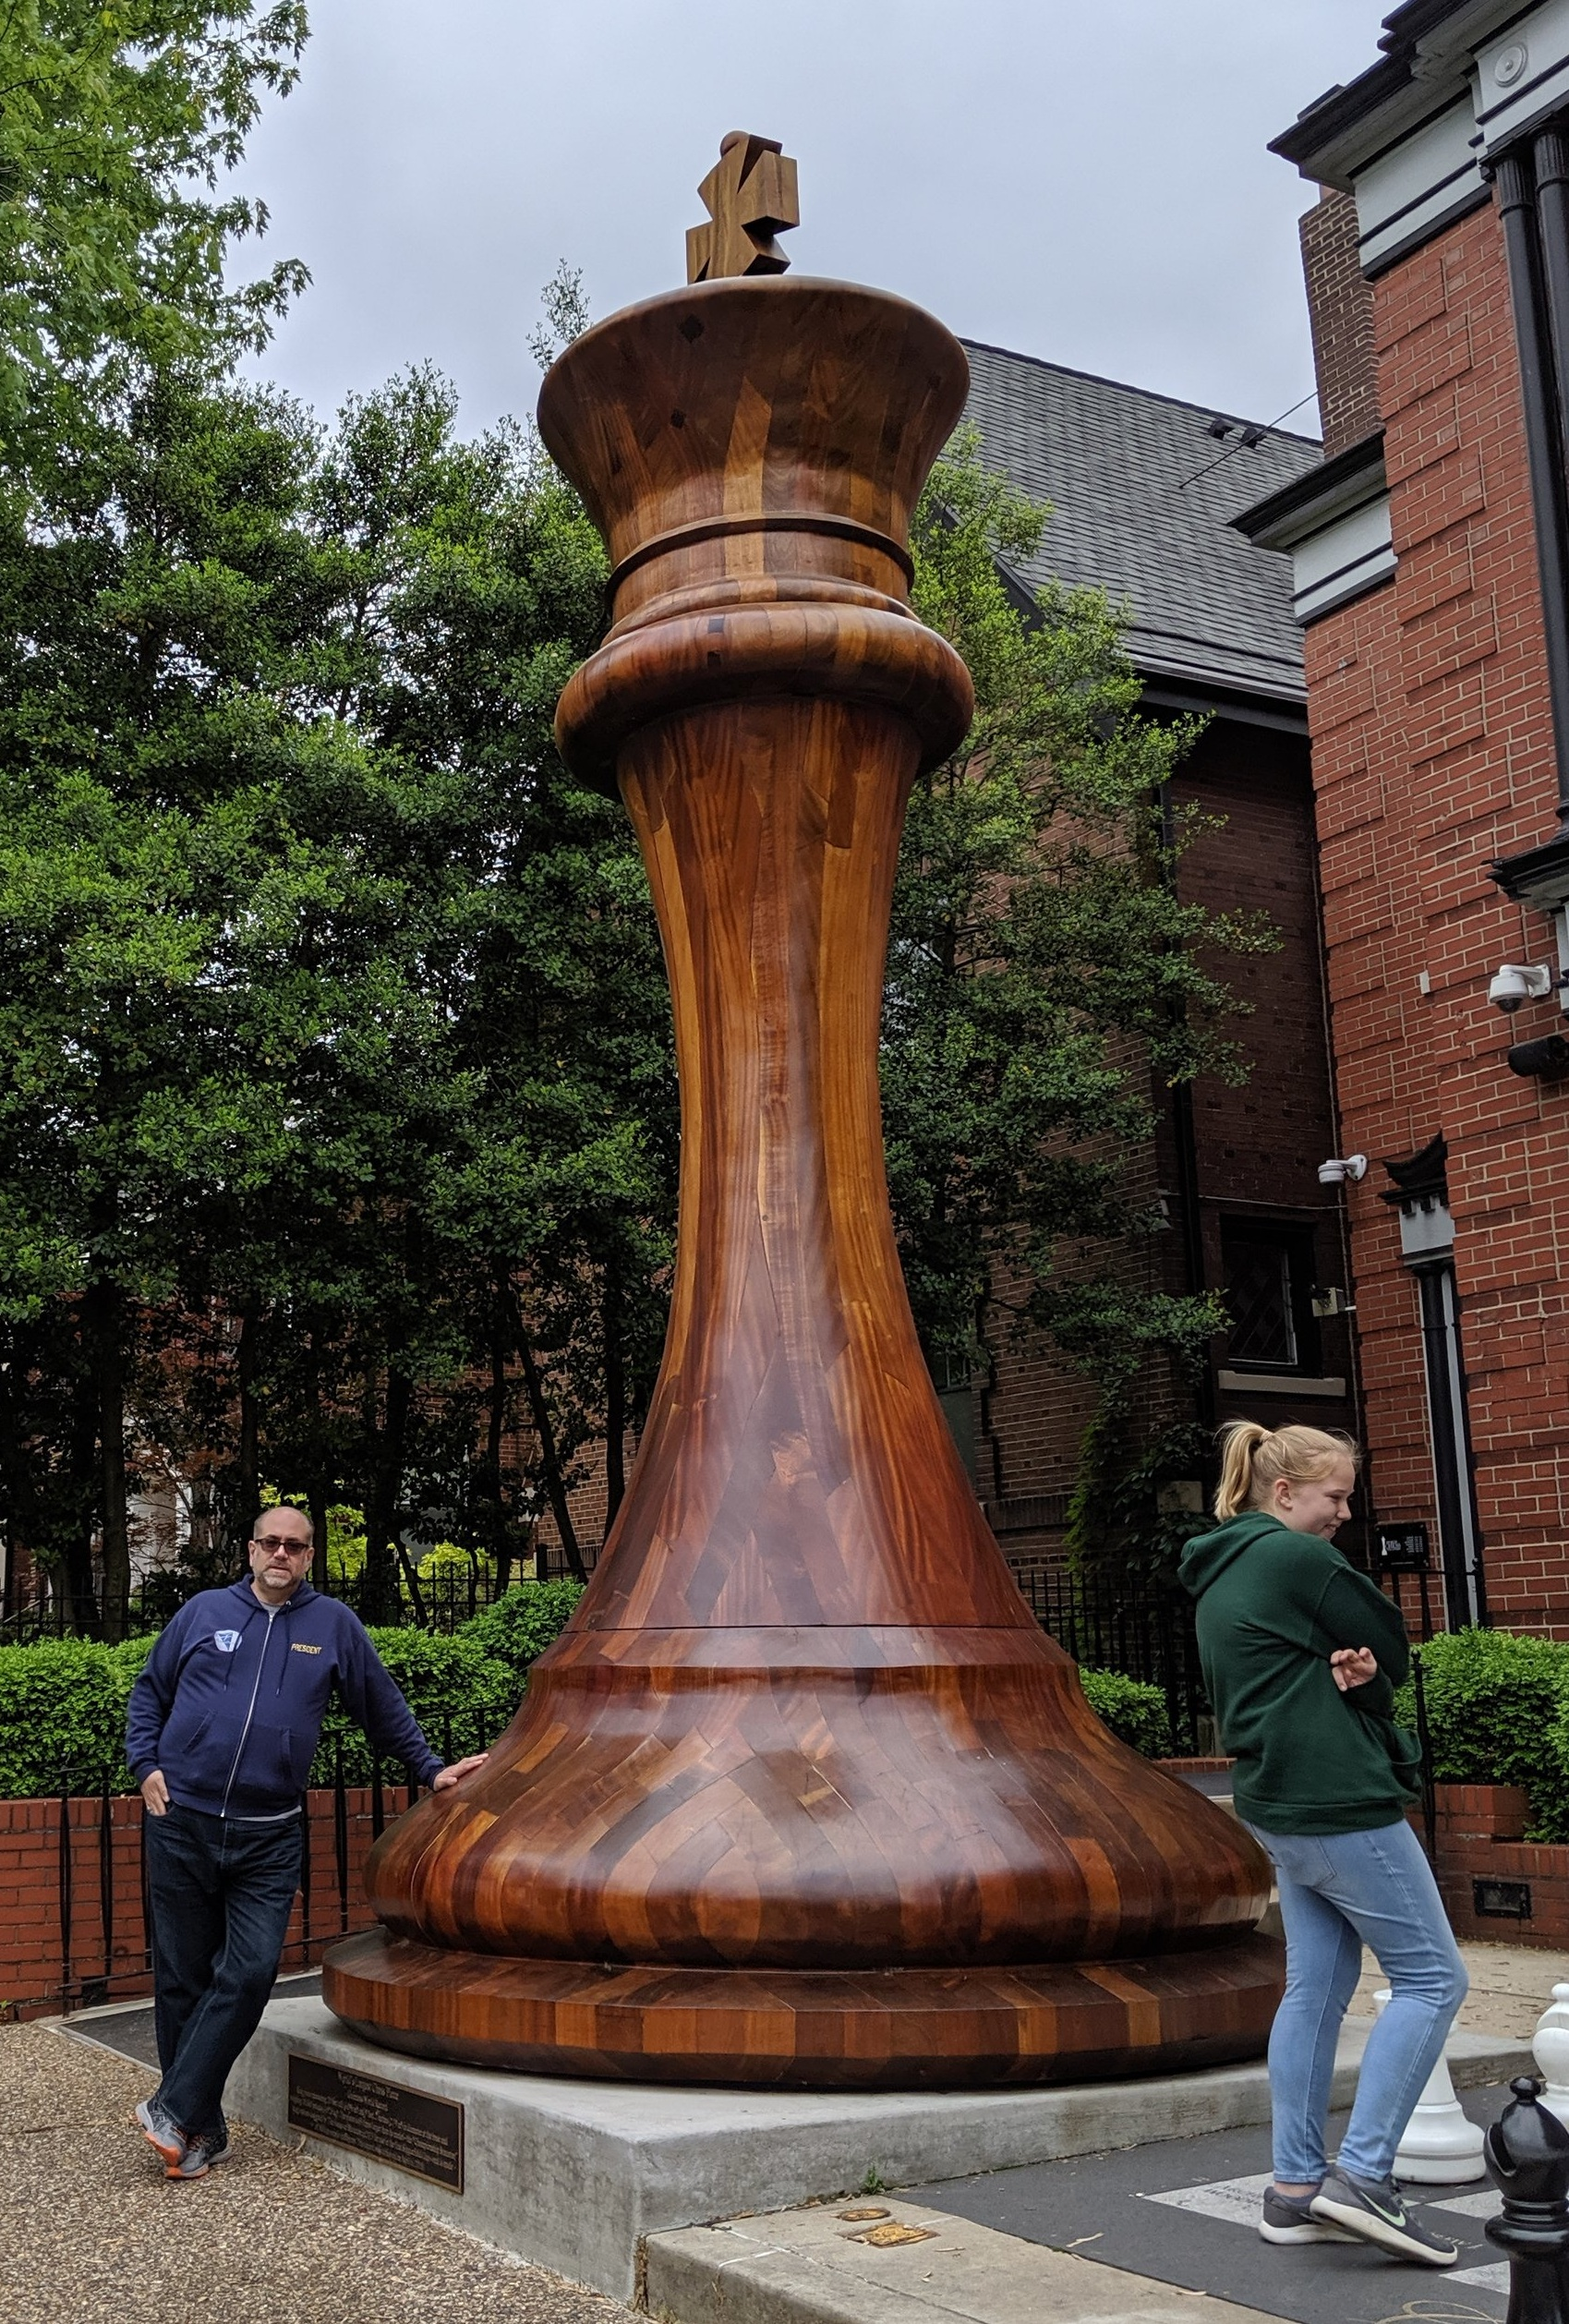 Here's the world's largest chess piece, outside the Chess Hall of Fame in St. Louis.